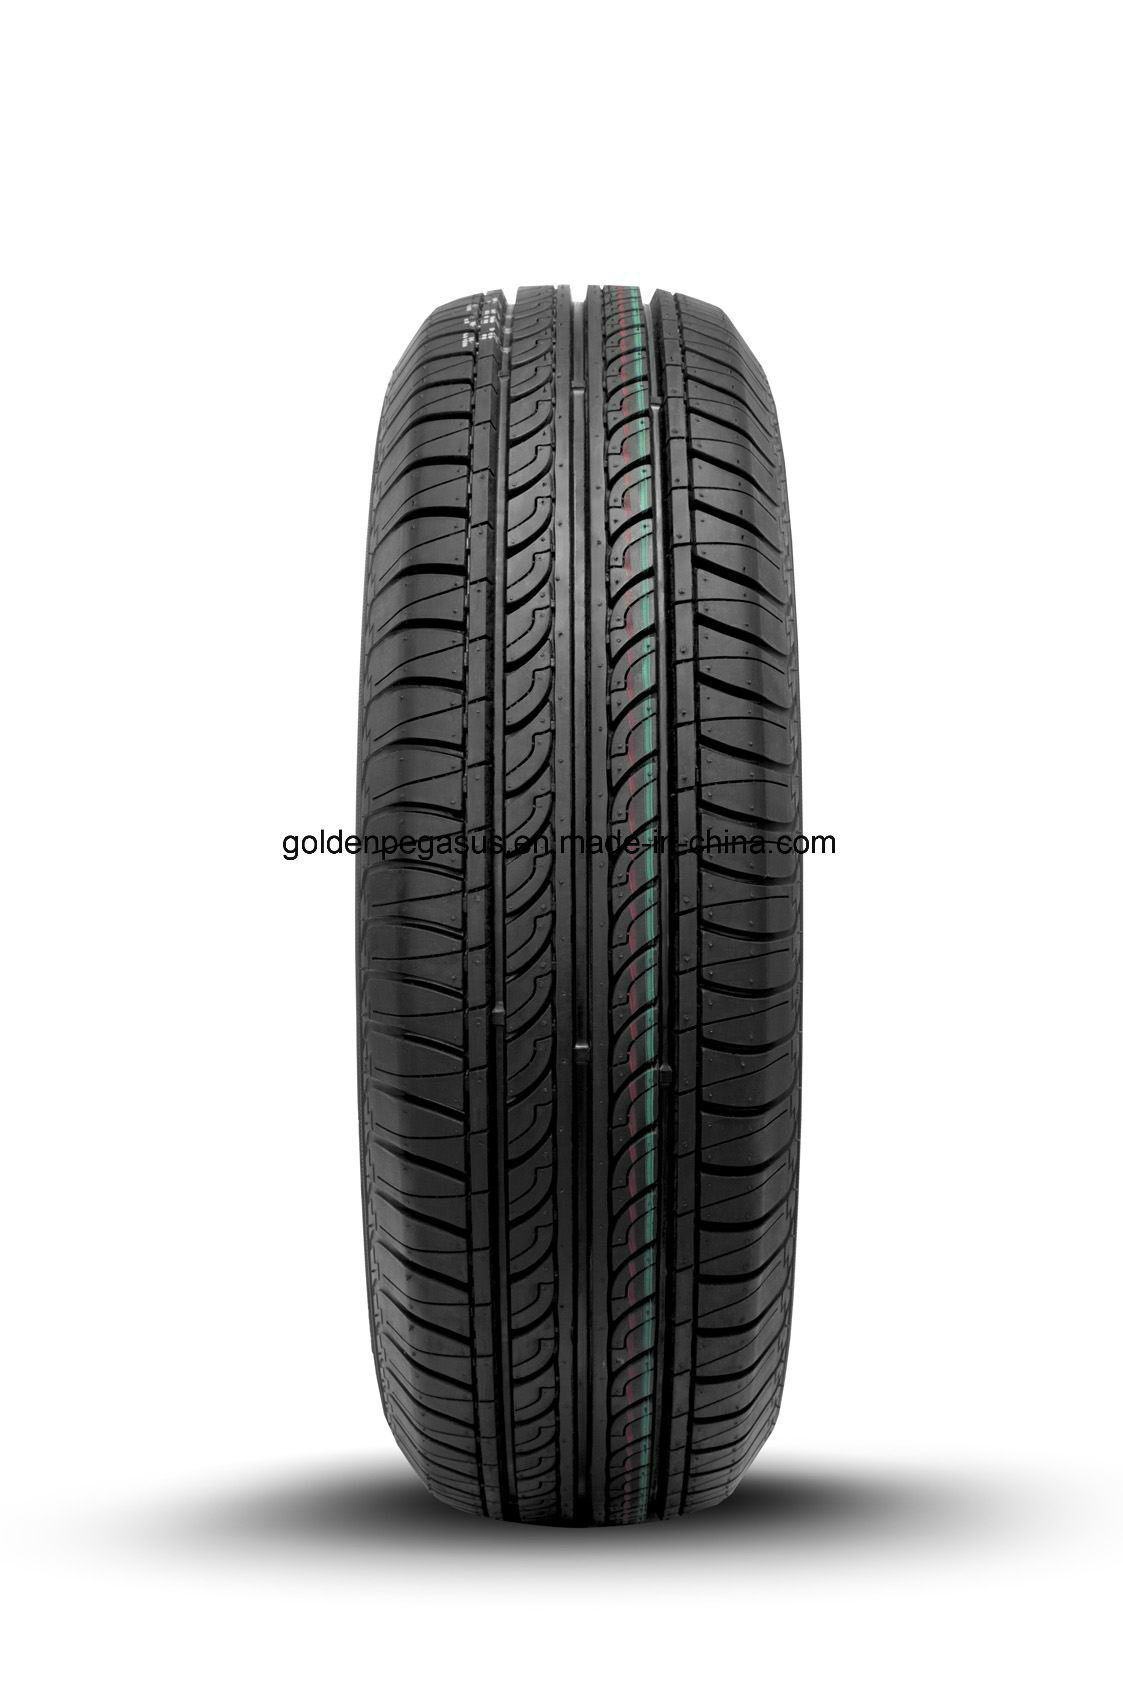 New Radial Cheap China PCR Tyre with High Quality 195/70r14 205/60r16 185/70r13